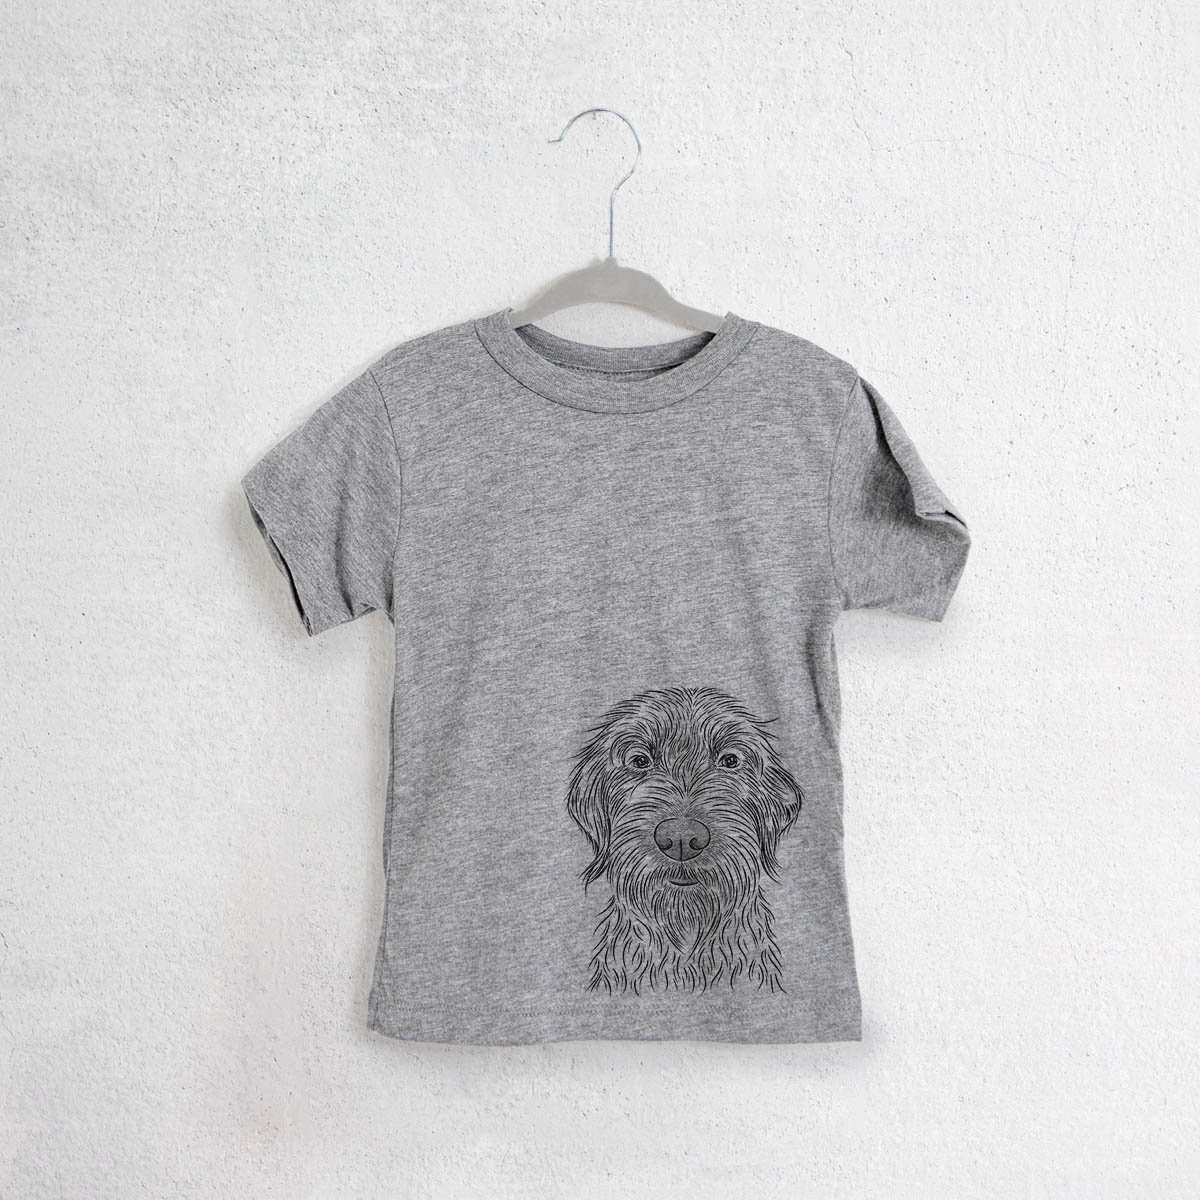 Wilkins the Wirehaired Pointing Griffon - Kids/Youth/Toddler Shirt